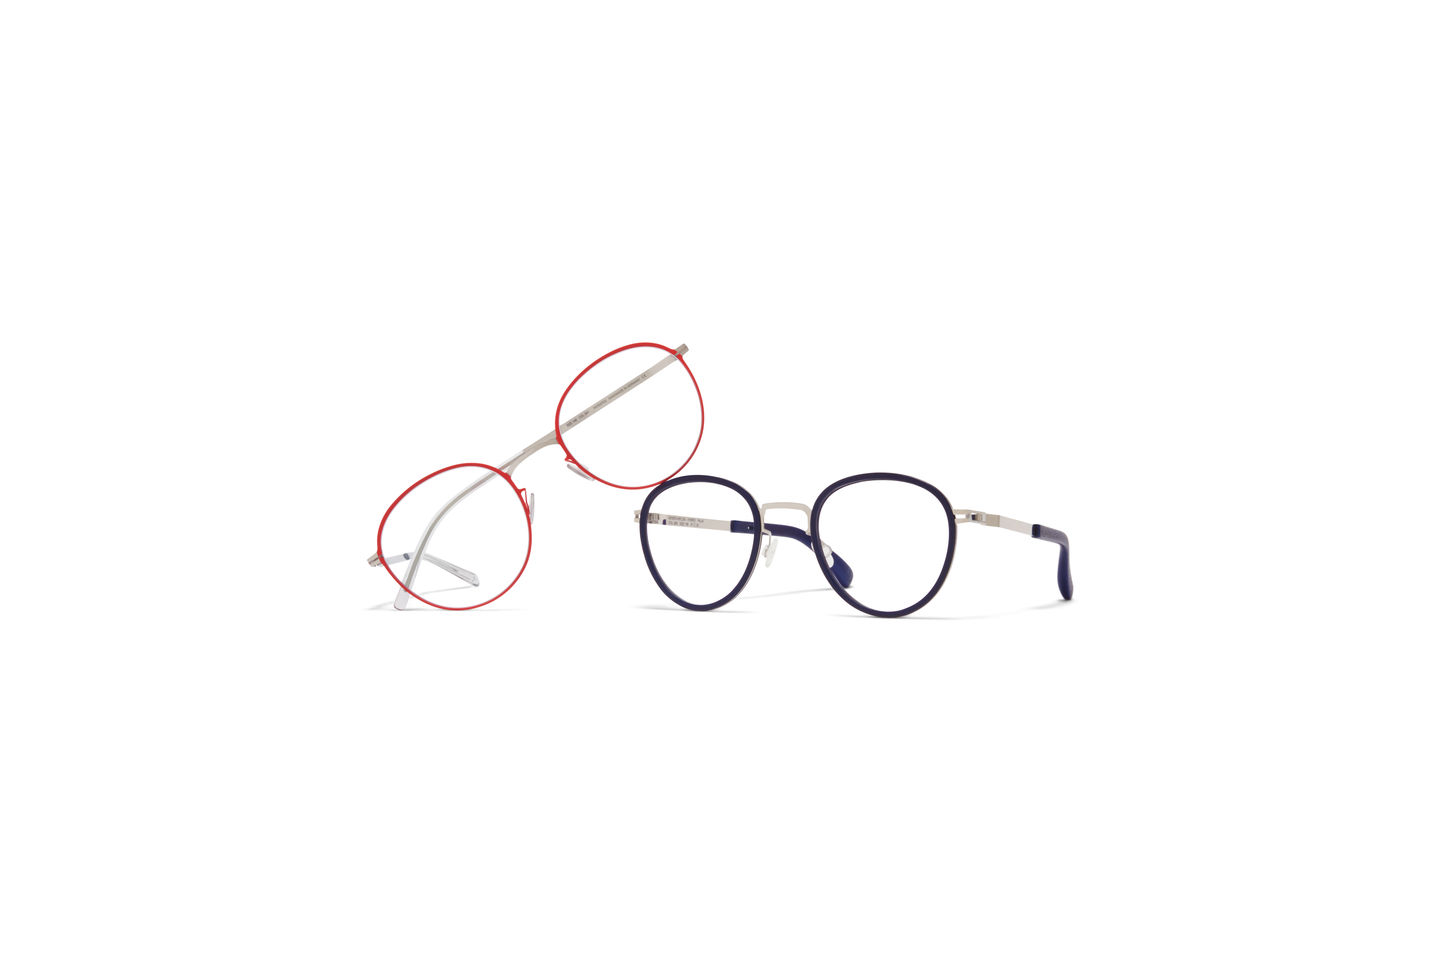 panto_rx_mykita-lite-acetate-rx-vabo-silver-rusty-red-clear-1508703-mykita-mylon-hybrid-rx-palm-mh10-navy-blue-shiny-silver-clear-1508788.jpg